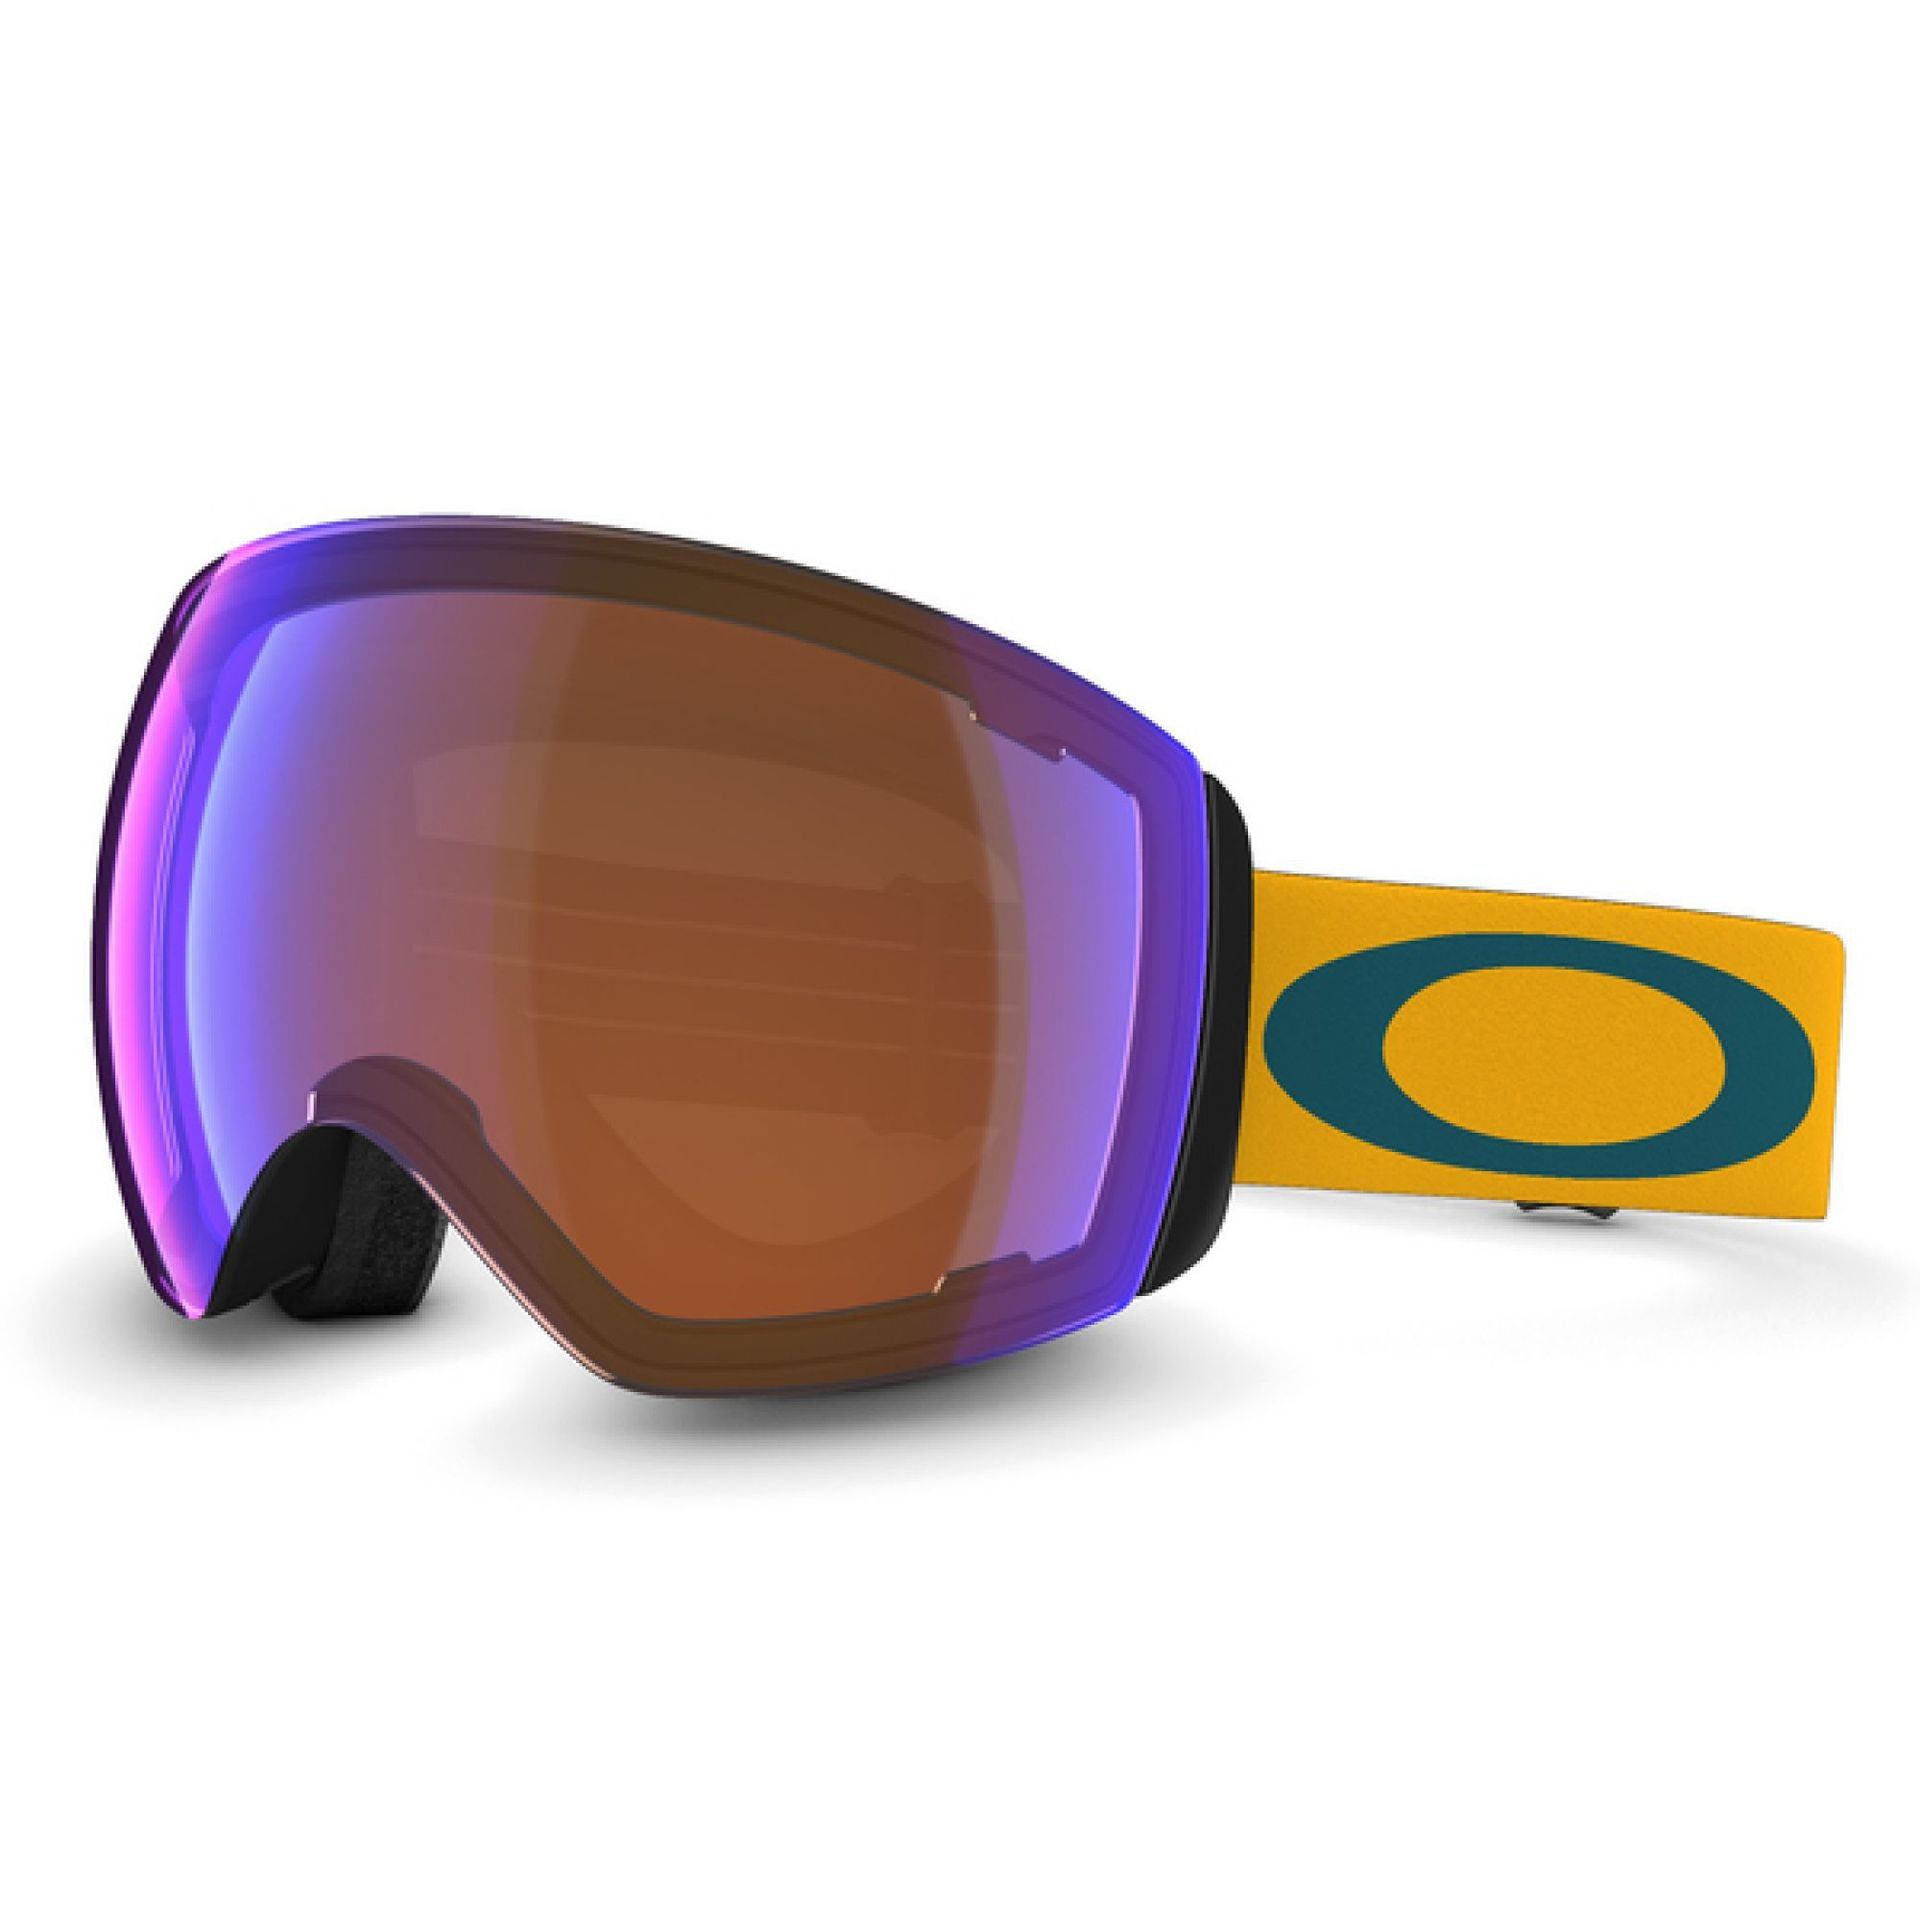 GOGLE OAKLEY FLIGHT DECK BRIGHT ORANGE|BLUE IRIDIUM 1